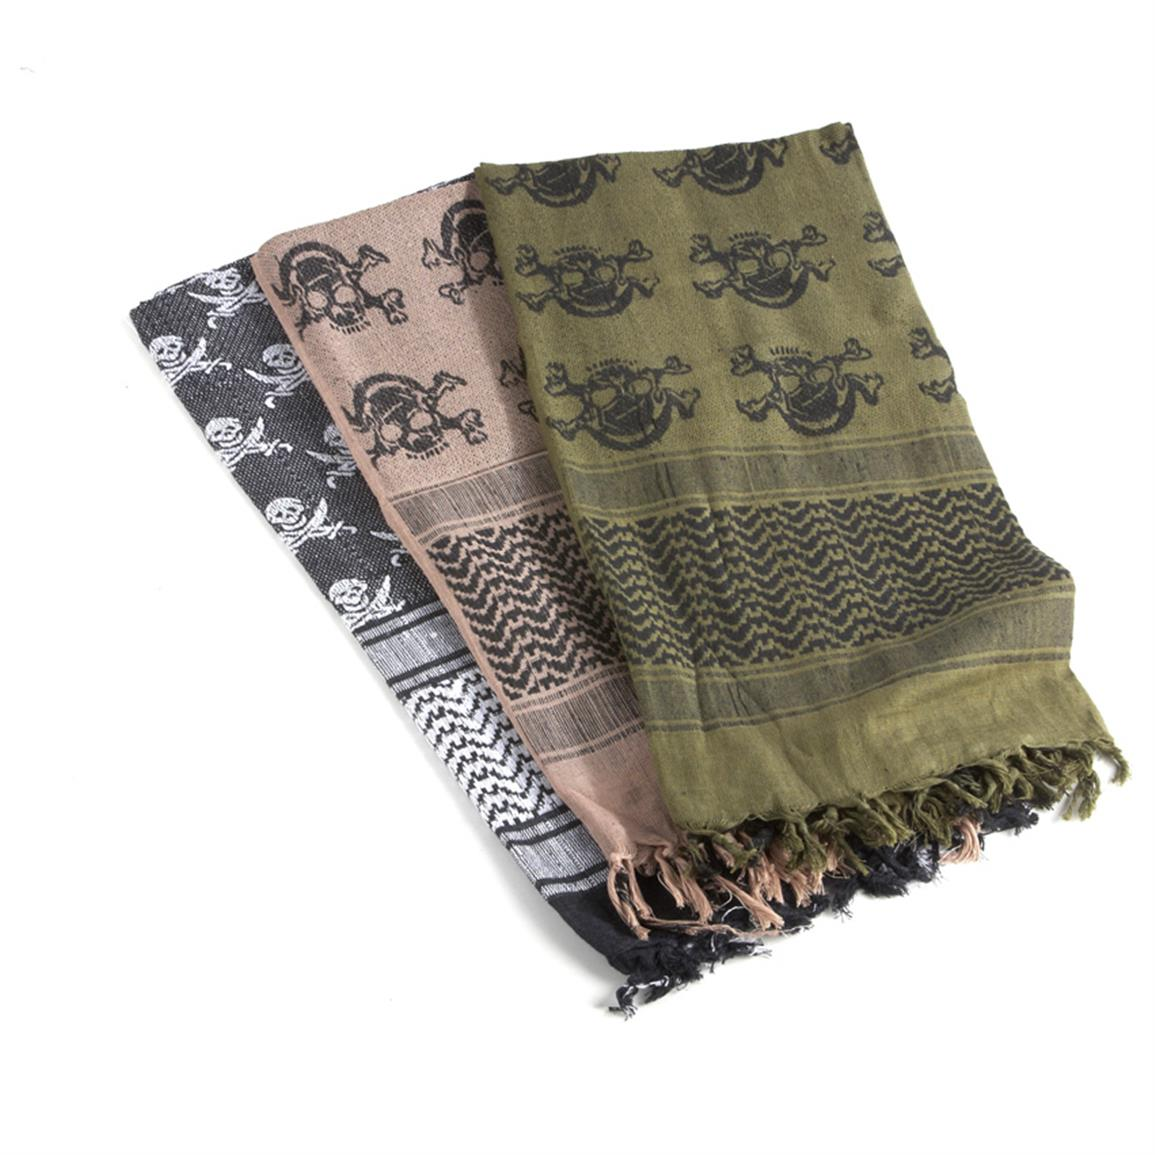 3-Pk. Coalition-style Scarves with Skulls, 1 Black / 1 Brown / 1 Olive Drab